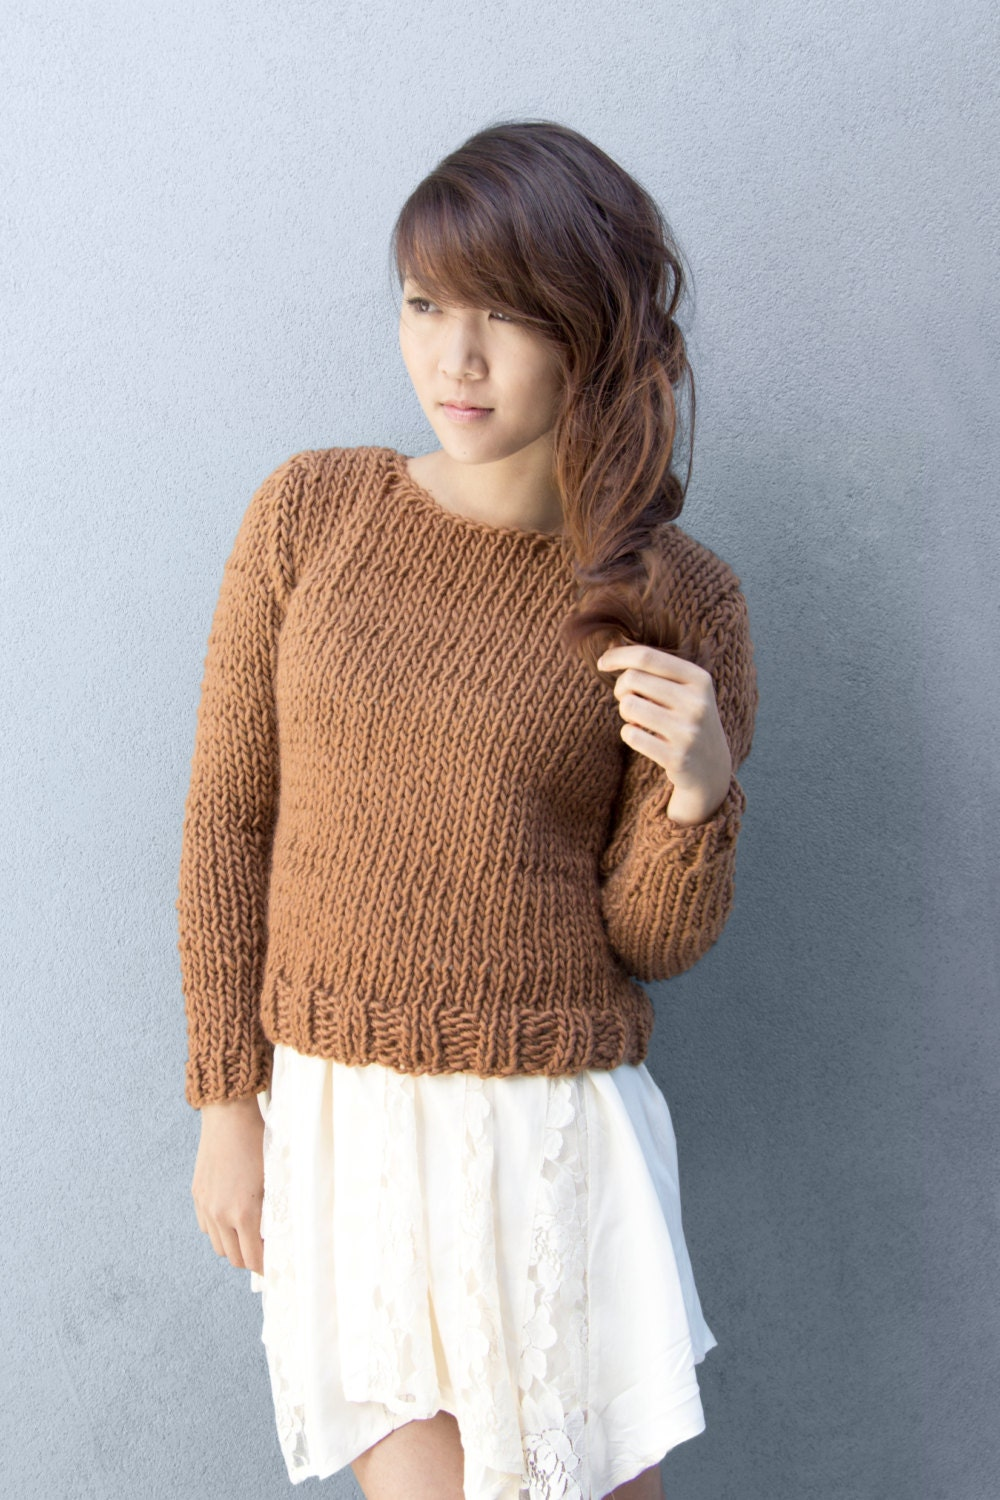 Easy Knitting Pattern For Sweater : Knitting Pattern for Beginners Basic Sweater Easy Throw-on